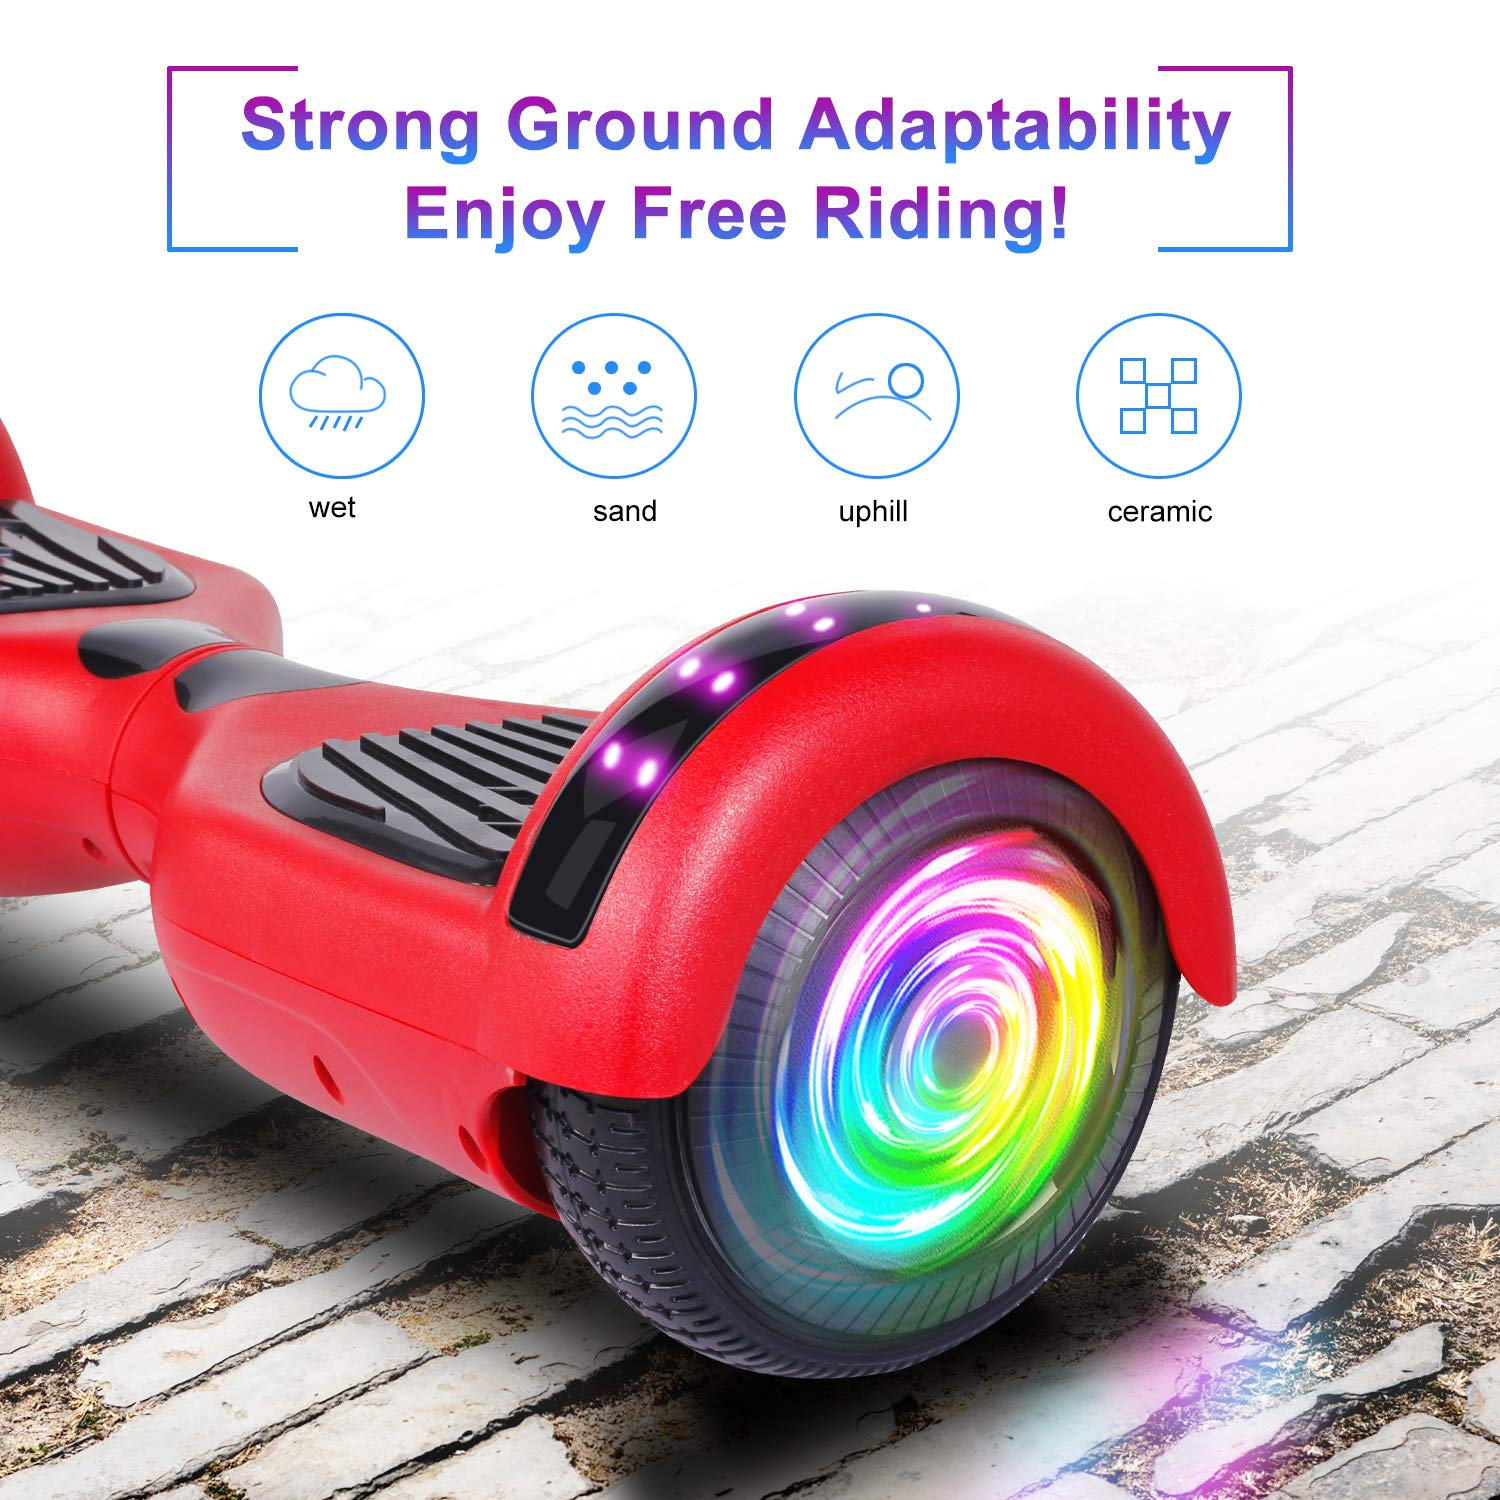 "SISIGAD Hoverboard 6.5"" Self Balancing Scooter with Colorful LED Wheels Lights Two-Wheels self Balancing Hoverboard Dual 300W Motors Hover Board UL2272 Certified(Free Carry Bag Available) by SISIGAD (Image #3)"